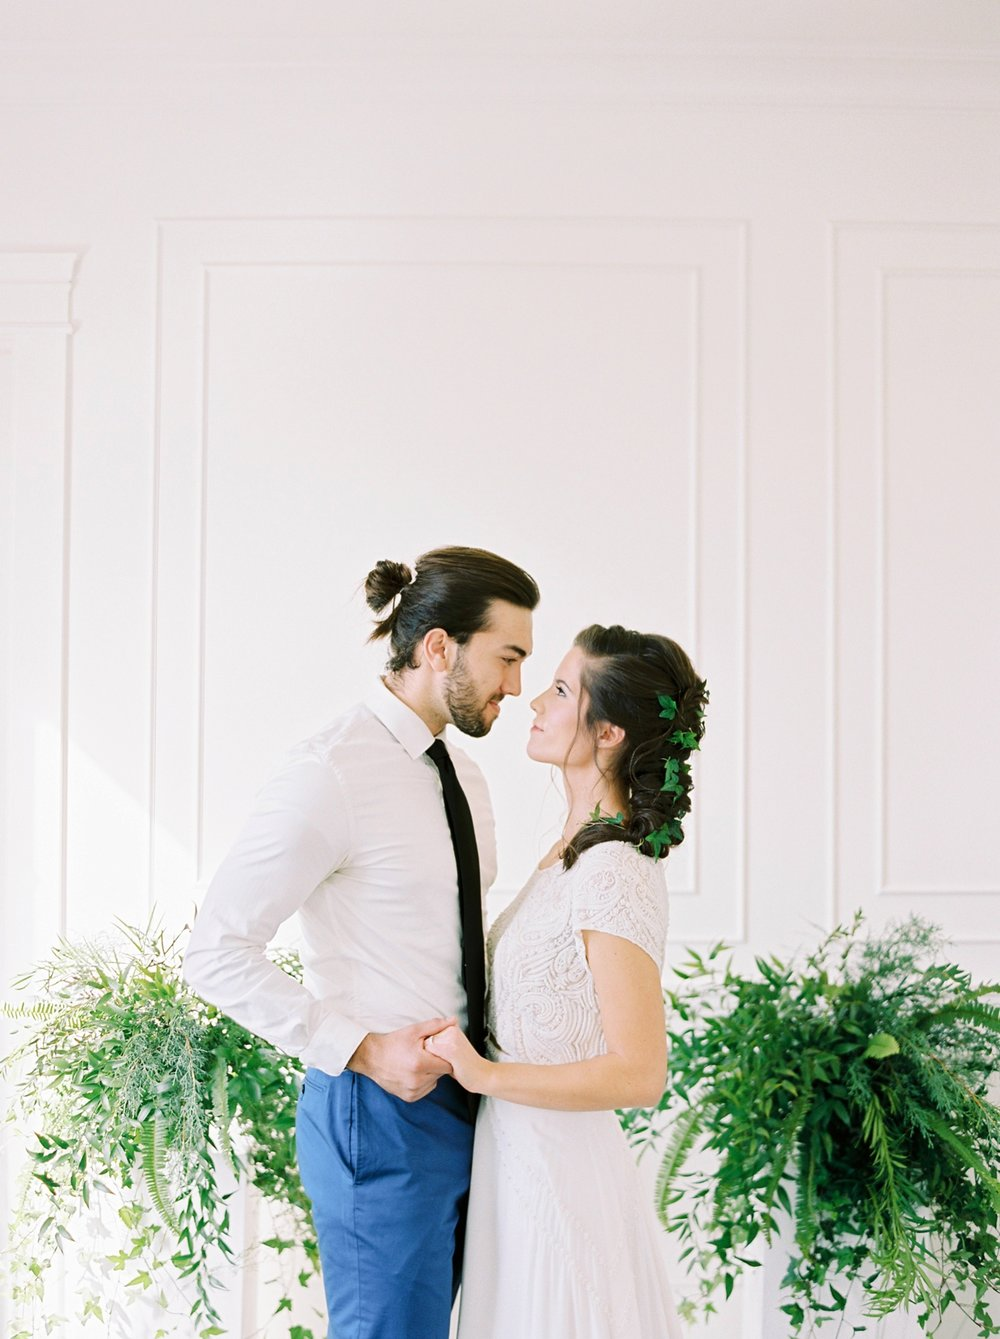 Calgary wedding photographers | fine art film | Justine Milton Photography | wedding details | editorial | wedding inspiration | bride and groom